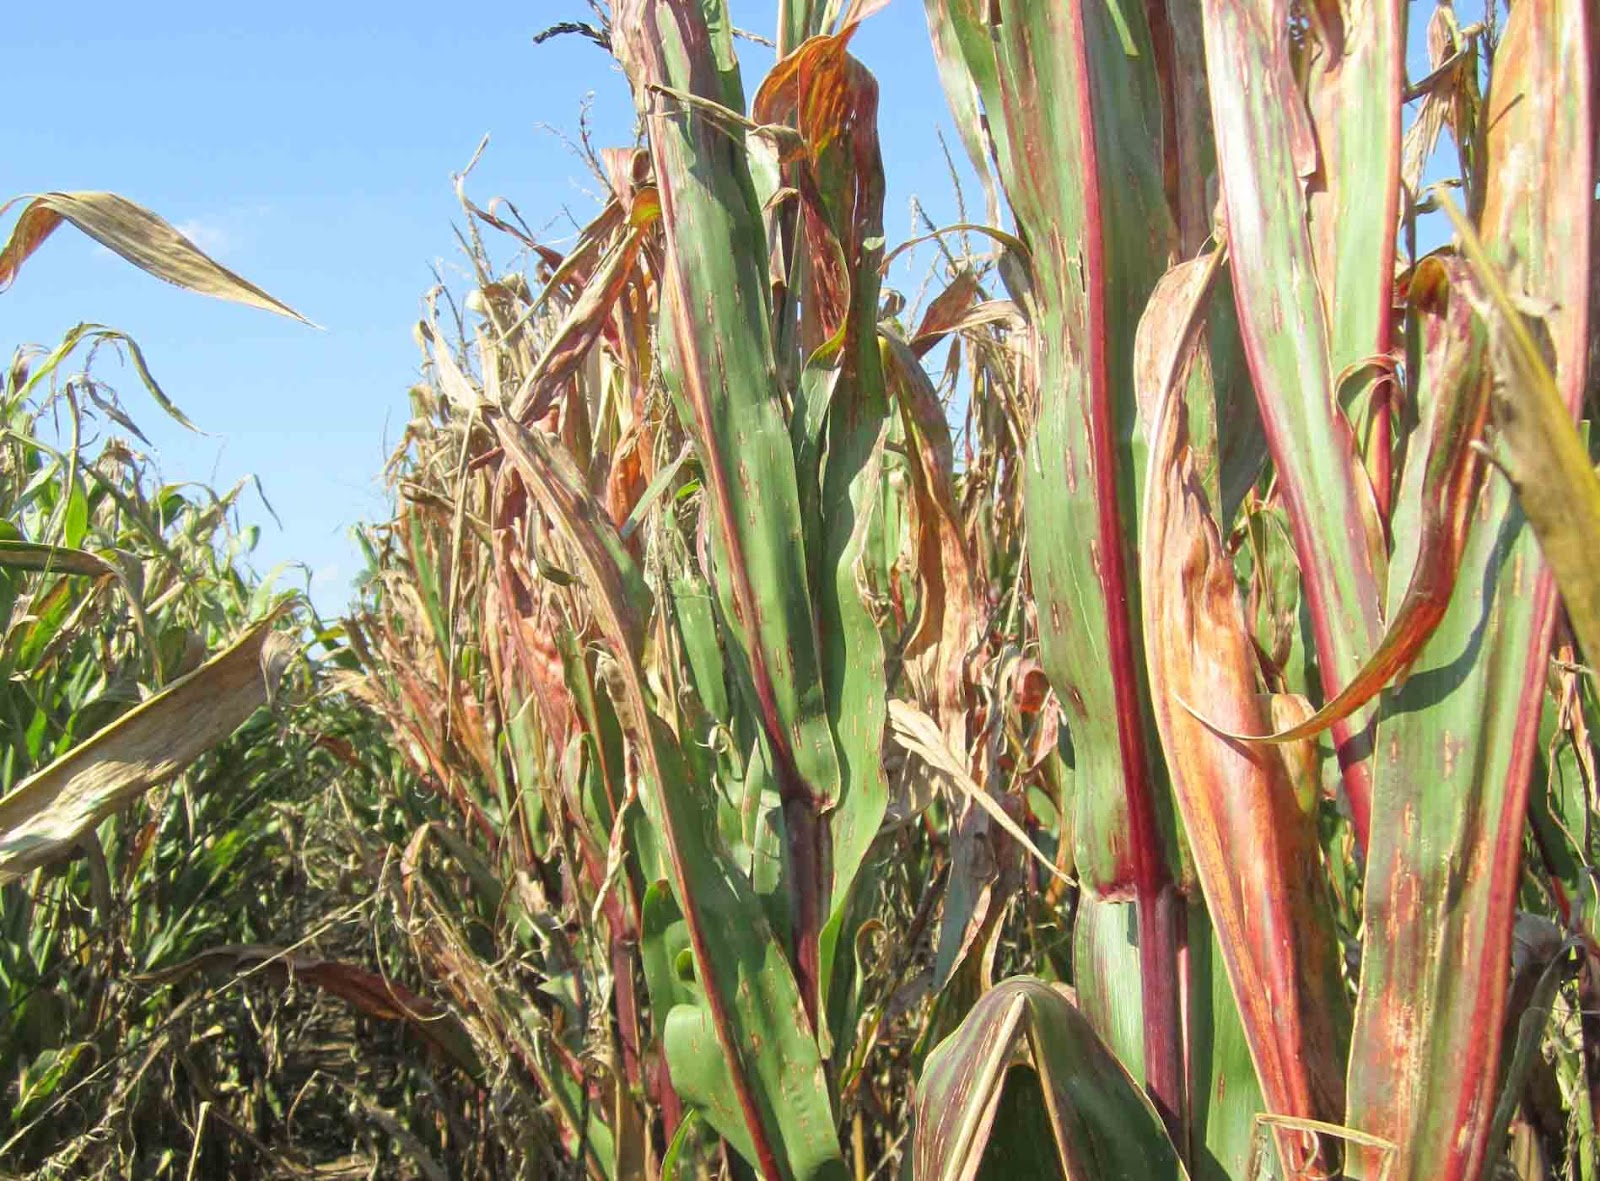 grain crops update red corn leaves and stalks